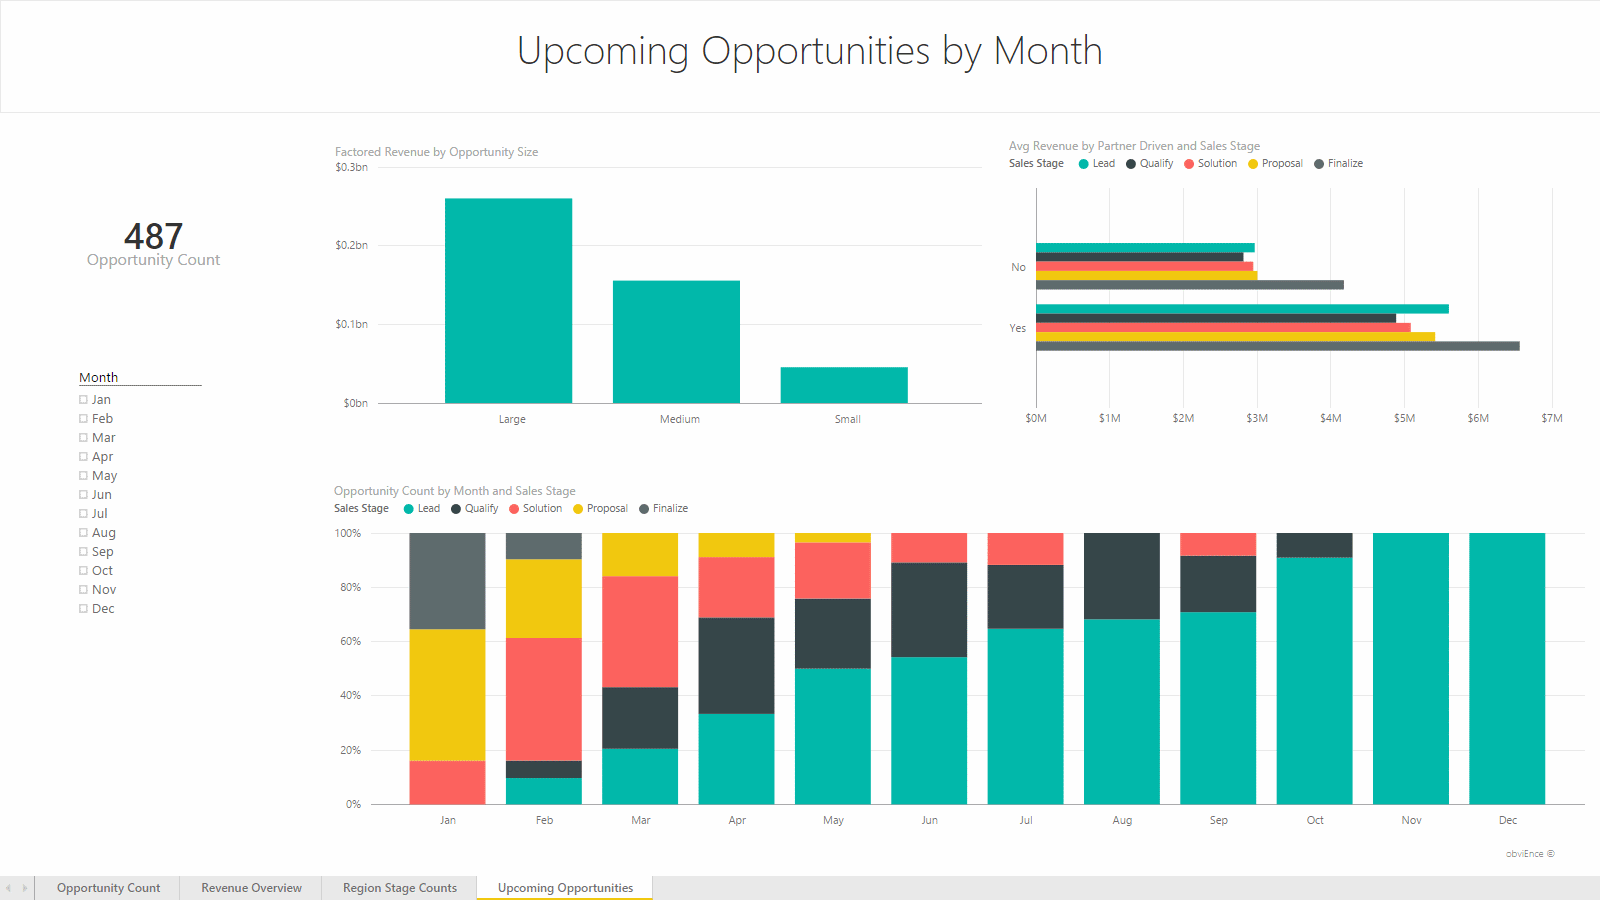 Report: Upcoming Opportunities